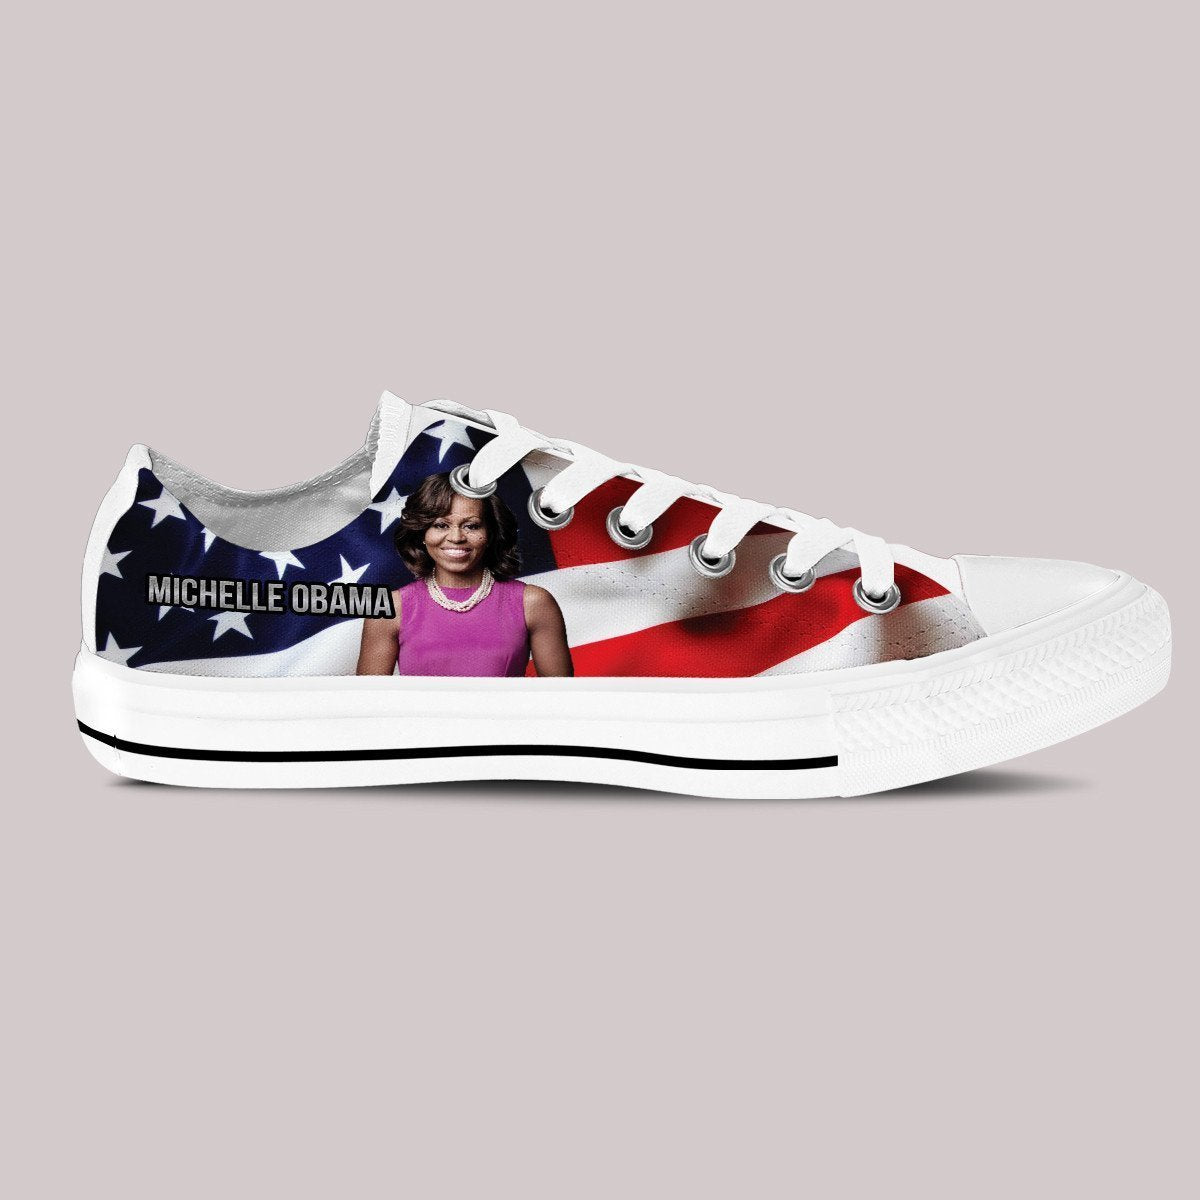 michelle obama ladies low cut sneakers